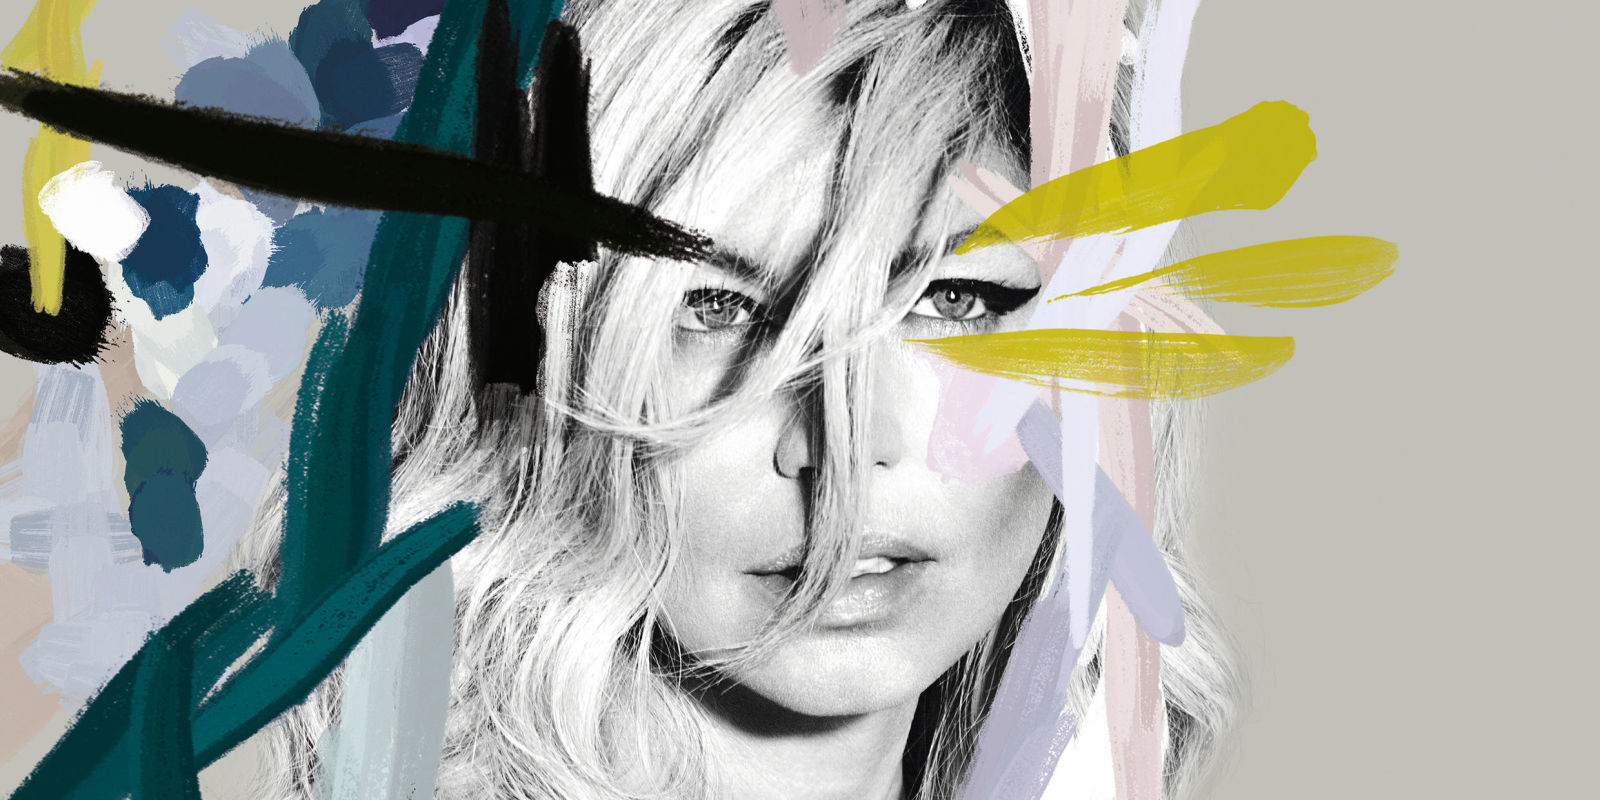 """Fergie's new song is """"Big Girls Don't Cry"""" part two and it's incredible: Listen here"""